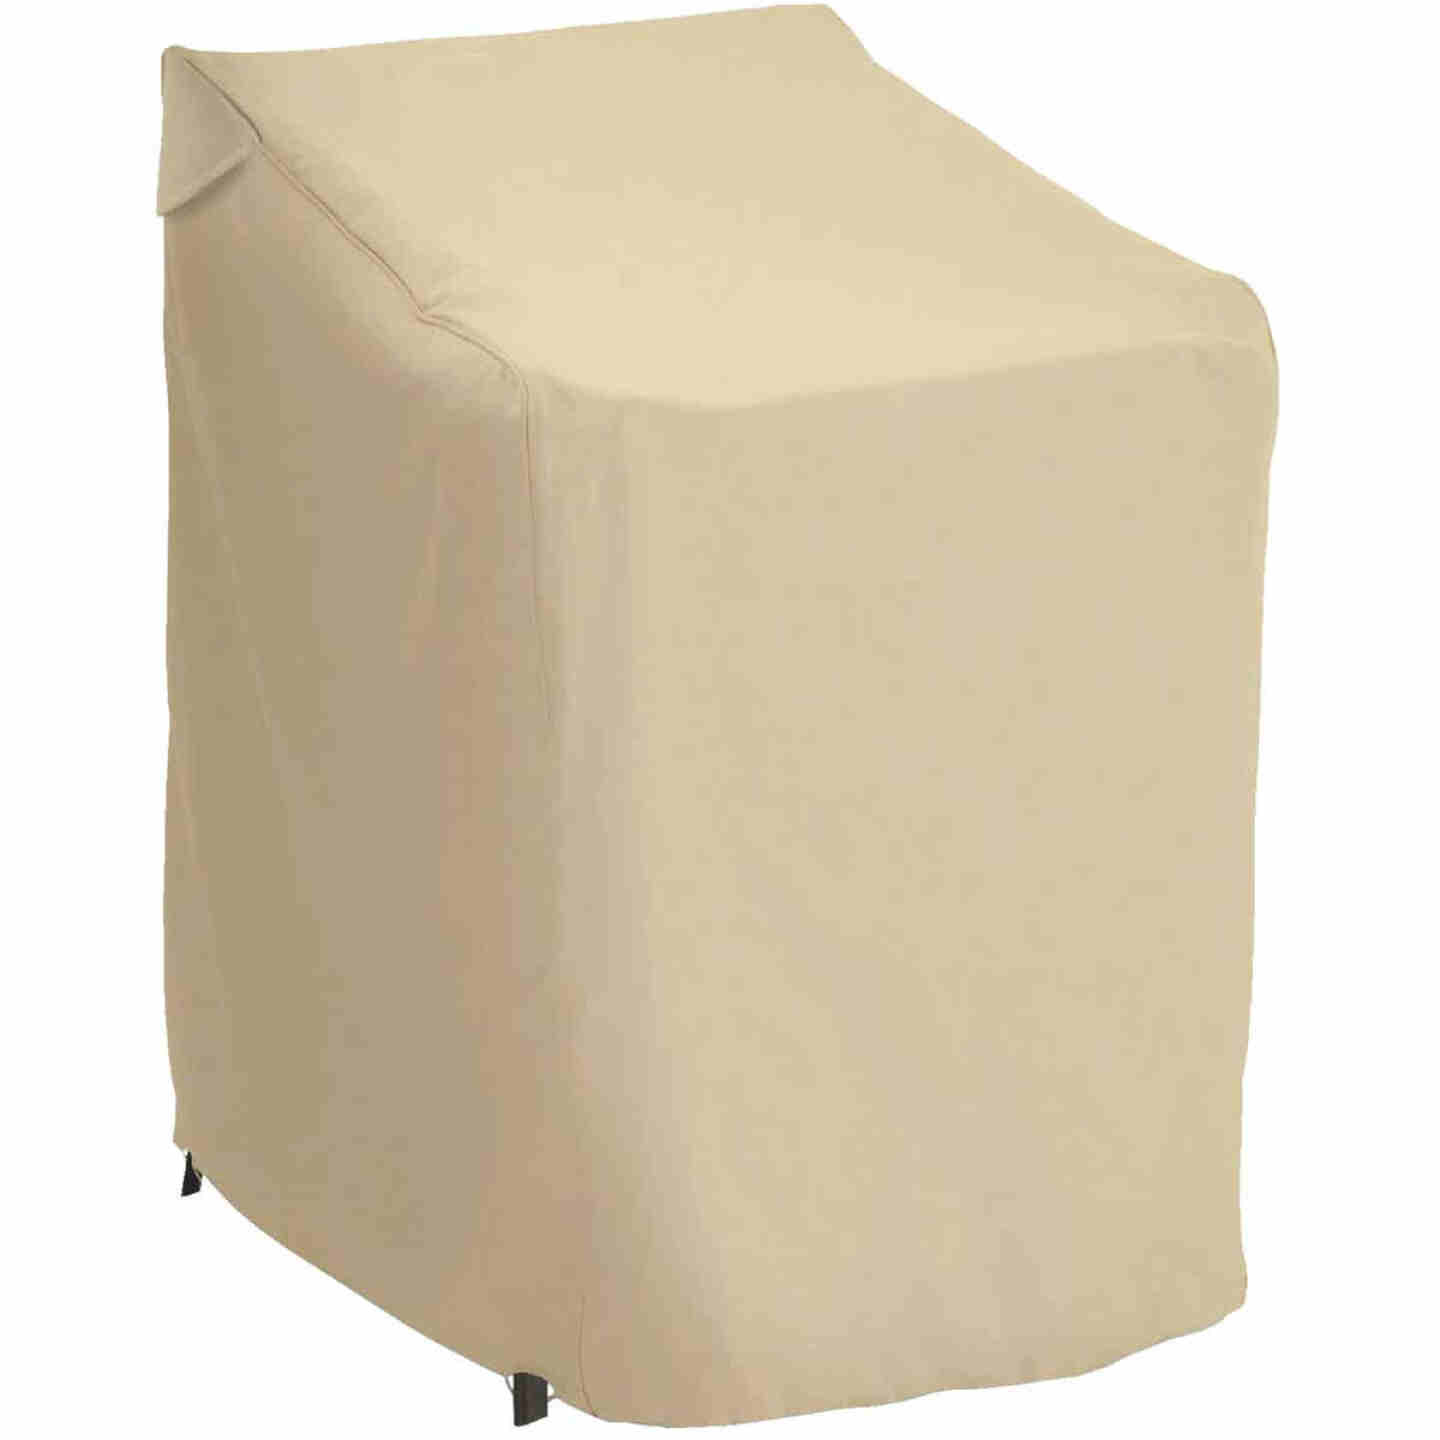 Classic Accessories 25.5 In. W. x 45 In. H. x 33.5 In. L. Tan Polyester/PVC Chair Cover Image 1